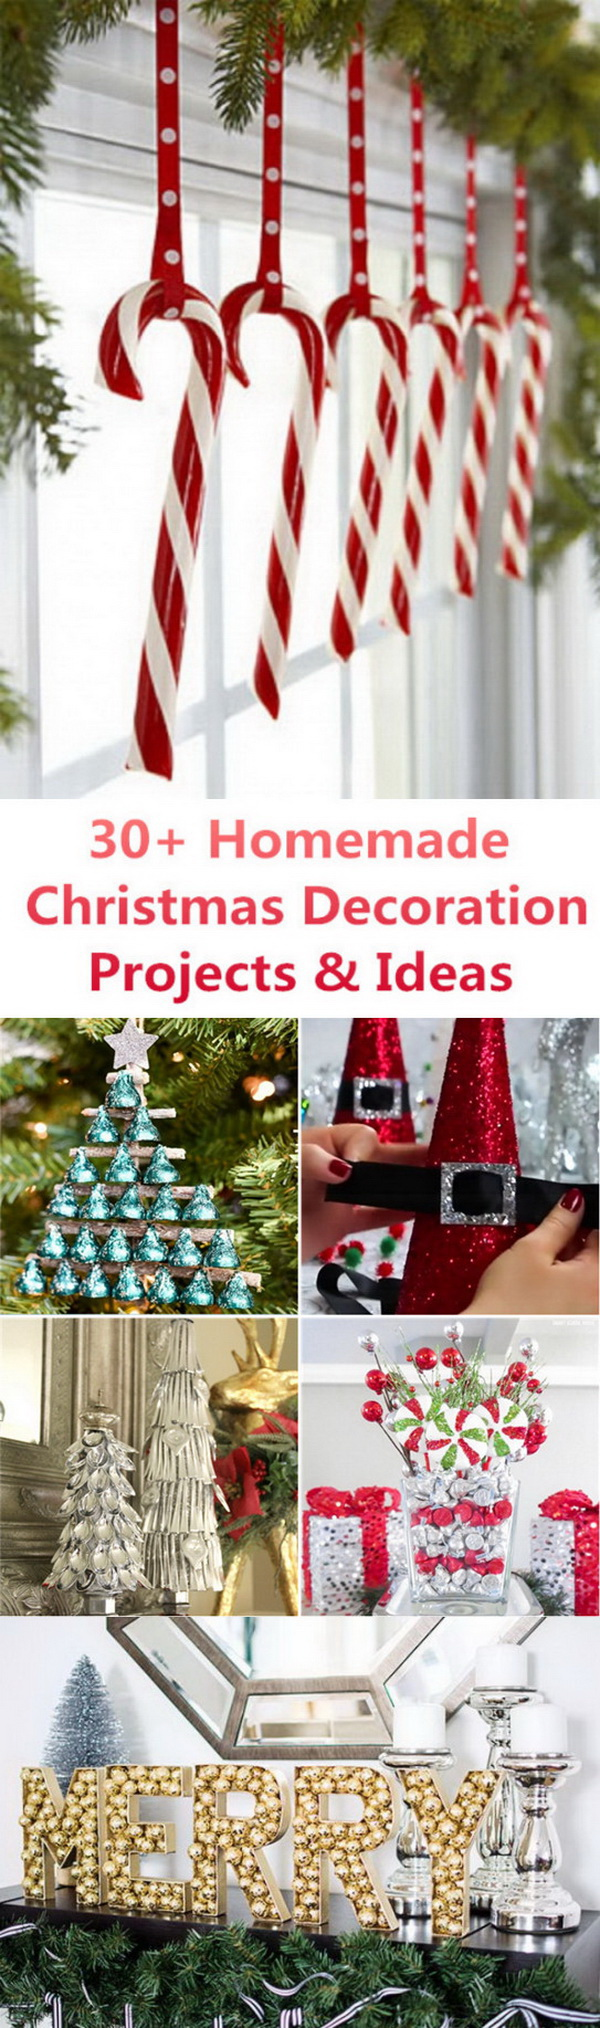 30 homemade christmas decoration projects ideas christmas is probably the best time of